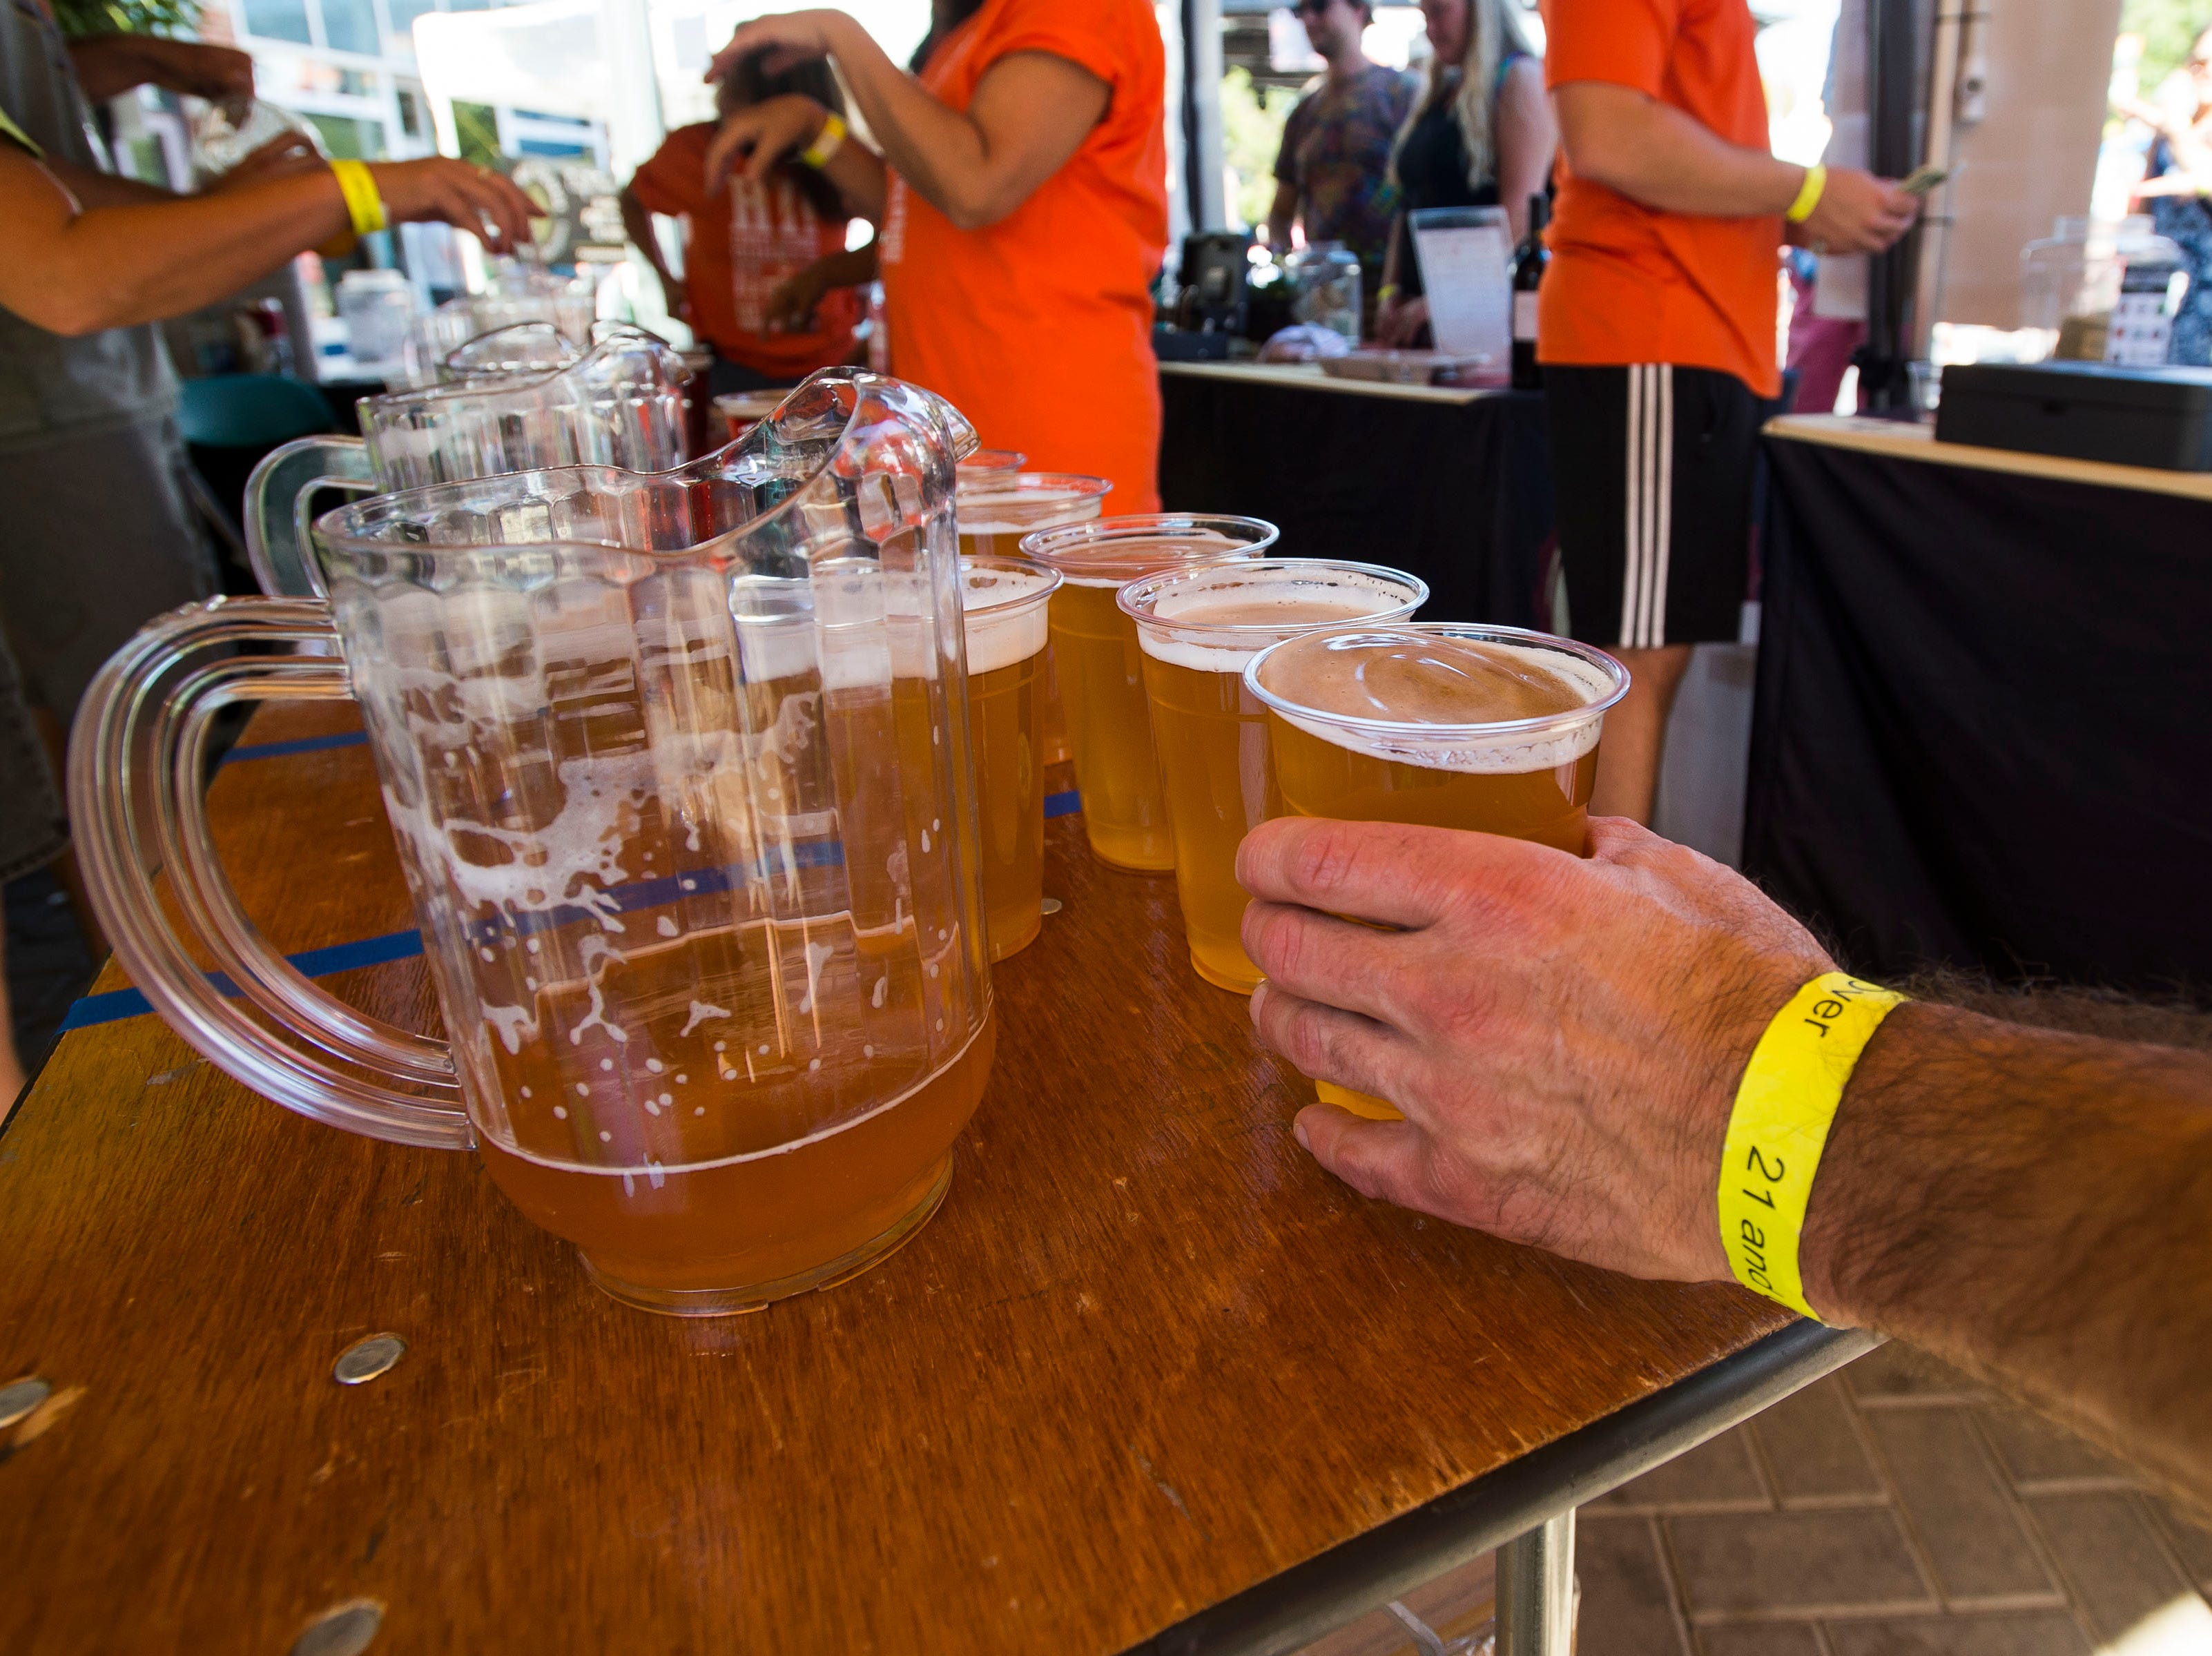 Volunteer Eric Giersch grabs a patron an Odell Brewing Easy Street wheat beer during Fortoberfest 2018 on Saturday, Sept. 15, 2018, at Old Town Square in Fort Collins, Colo.